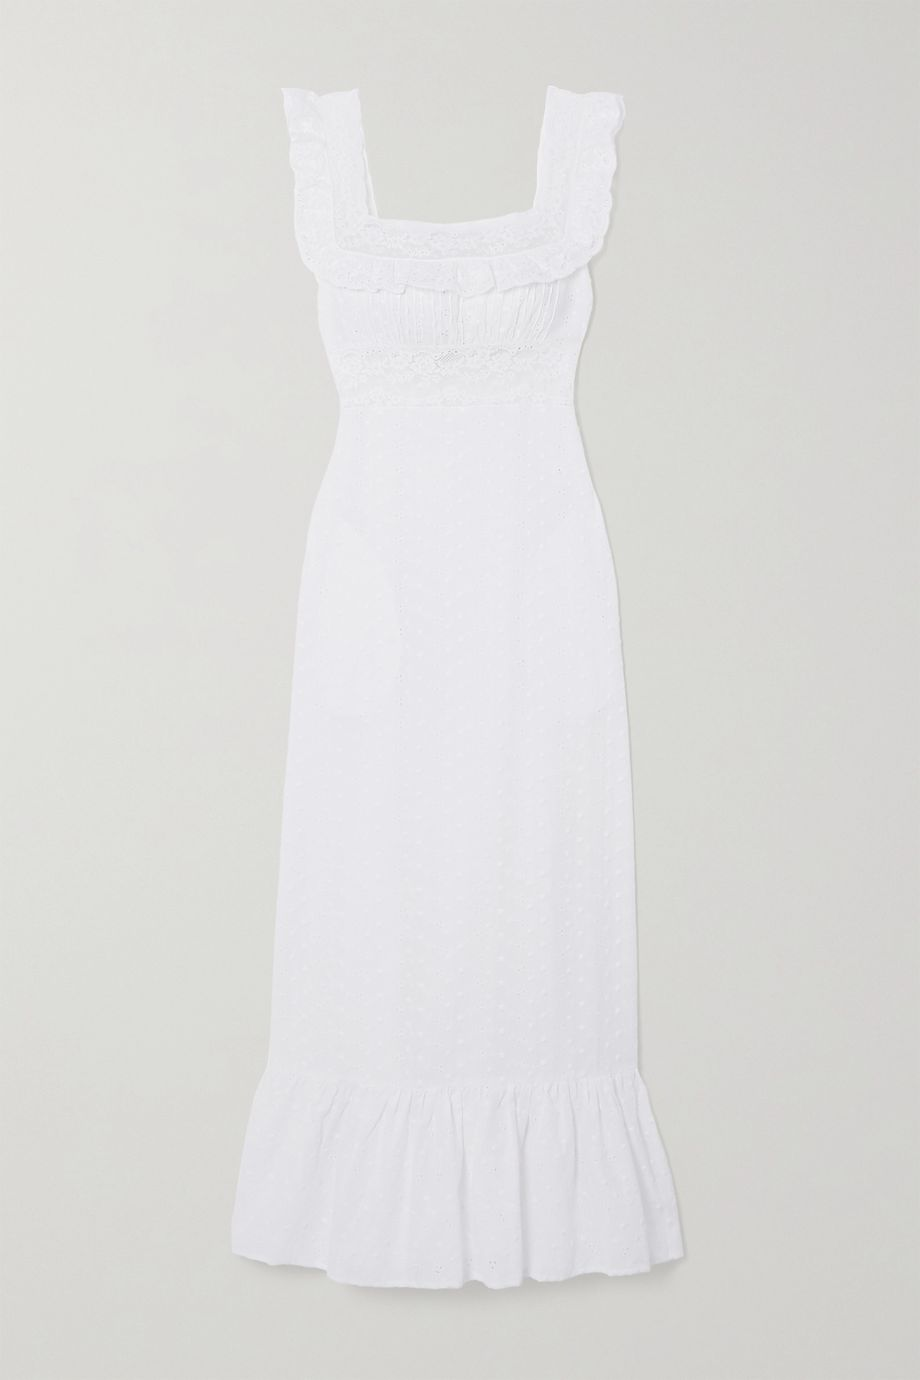 Loretta Caponi Margherita lace-trimmed broderie anglaise cotton-voile nightdress